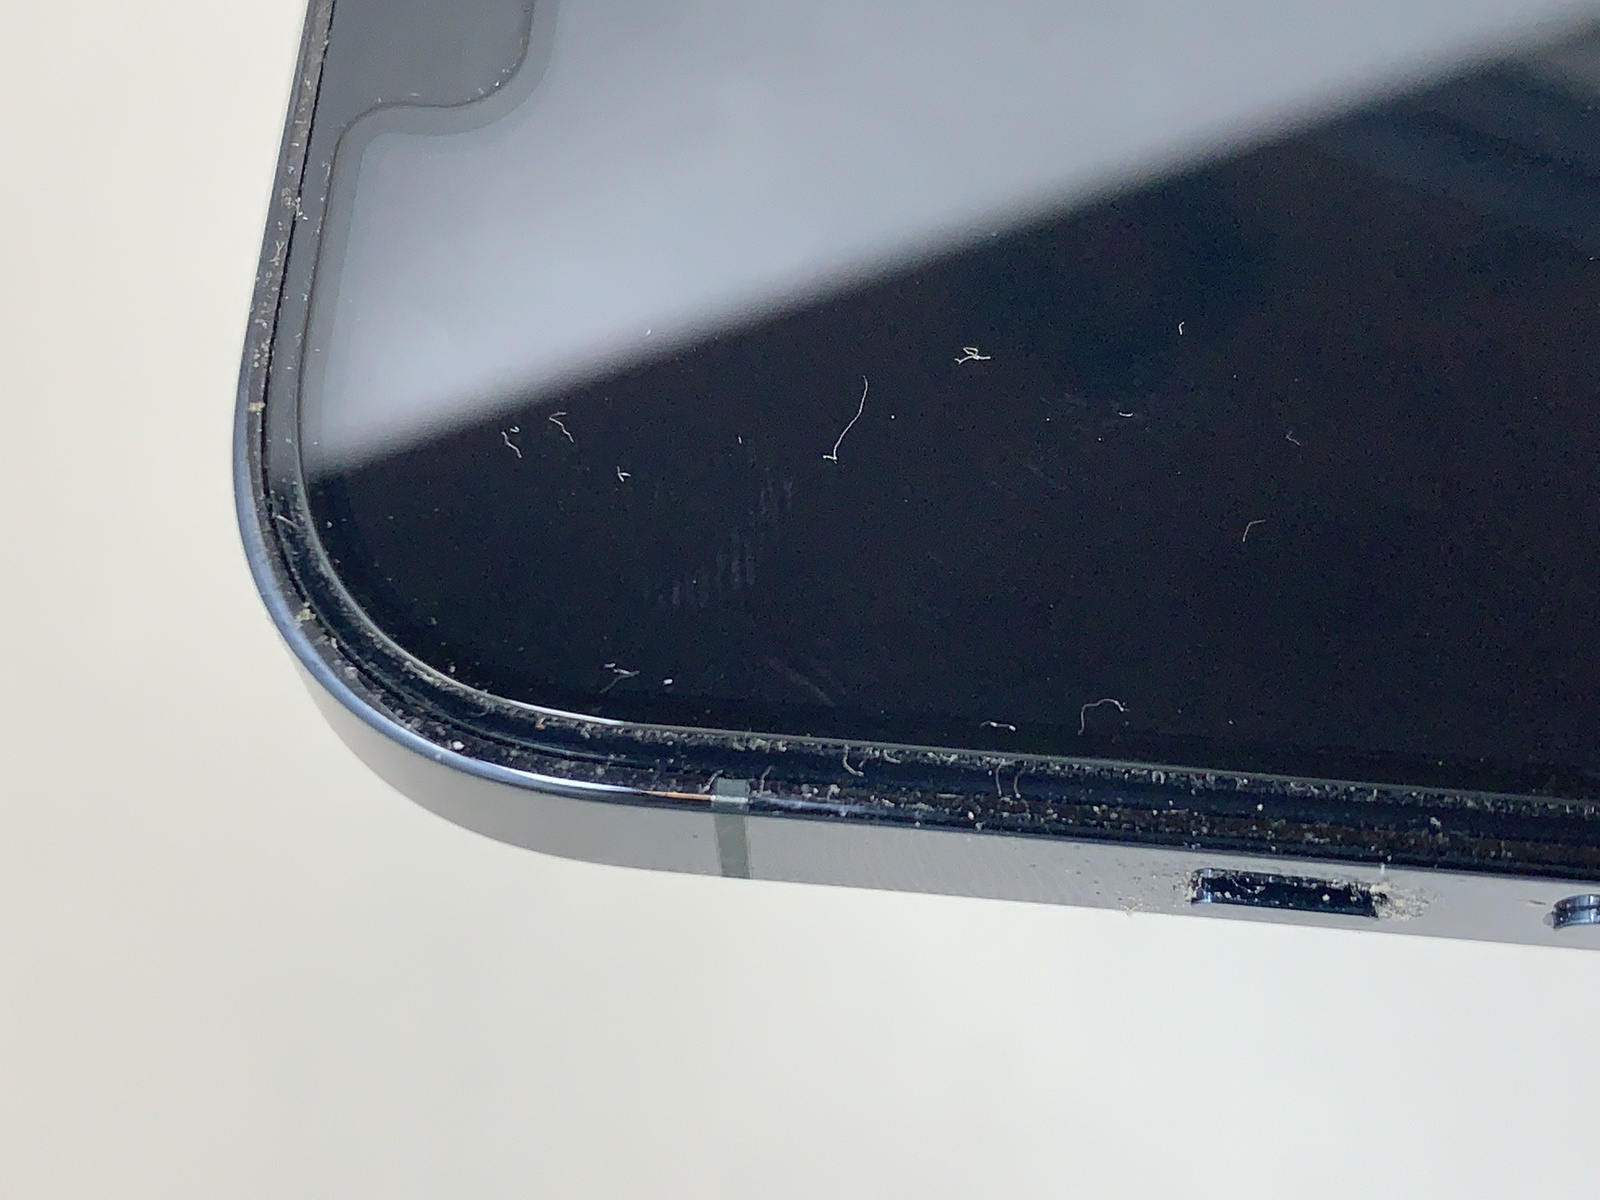 iphone12-cleaning-02-photo-003